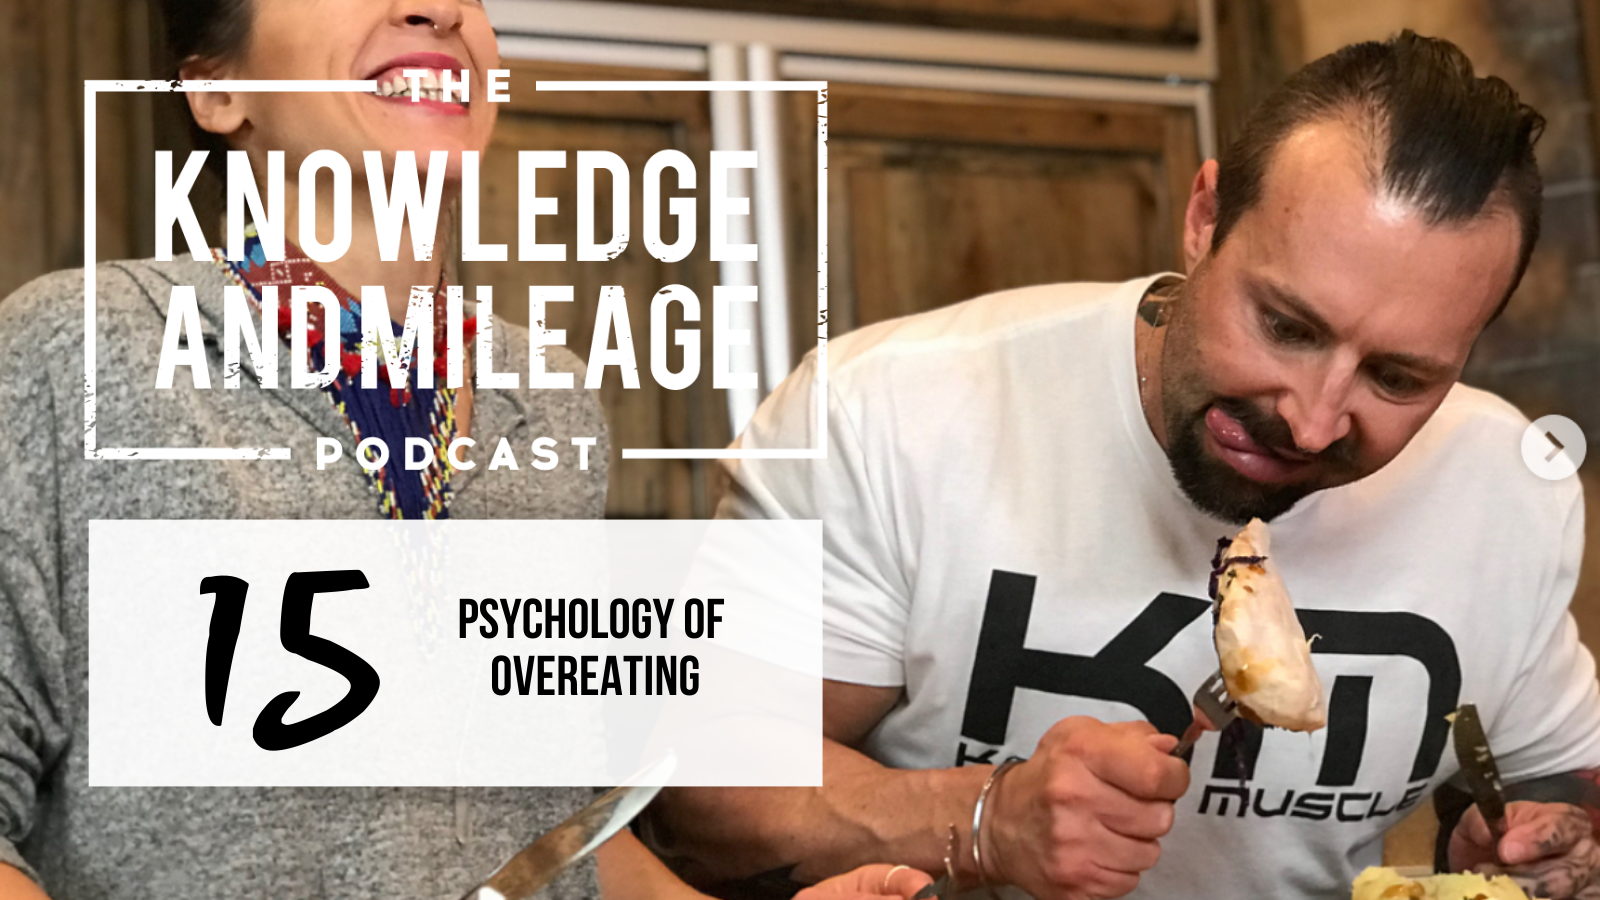 EP 15: The Psychology of Overeating